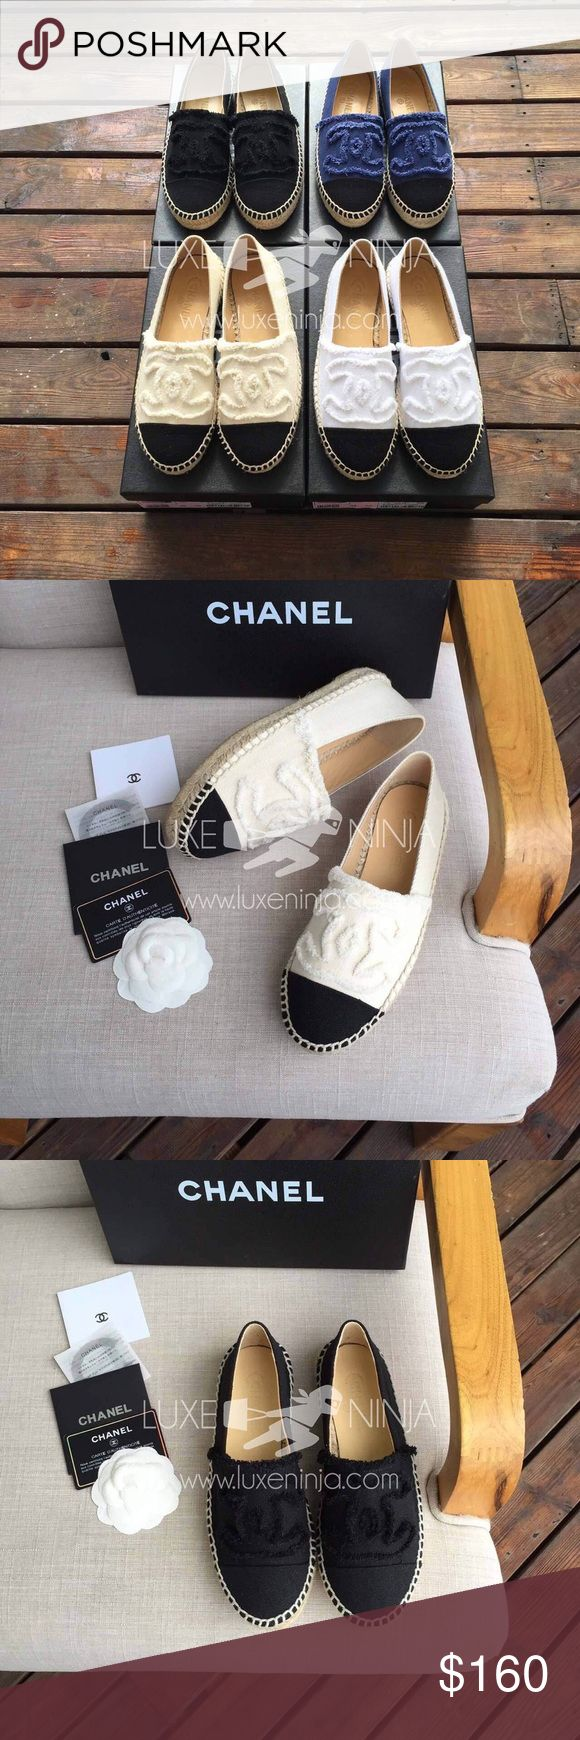 Chanel espadrilles canvas For more info on the items please visit our website LuxeNinja.com  Ship in 7-14 days ✈️ Website price: 160$  CHANEL Shoes Espadrilles